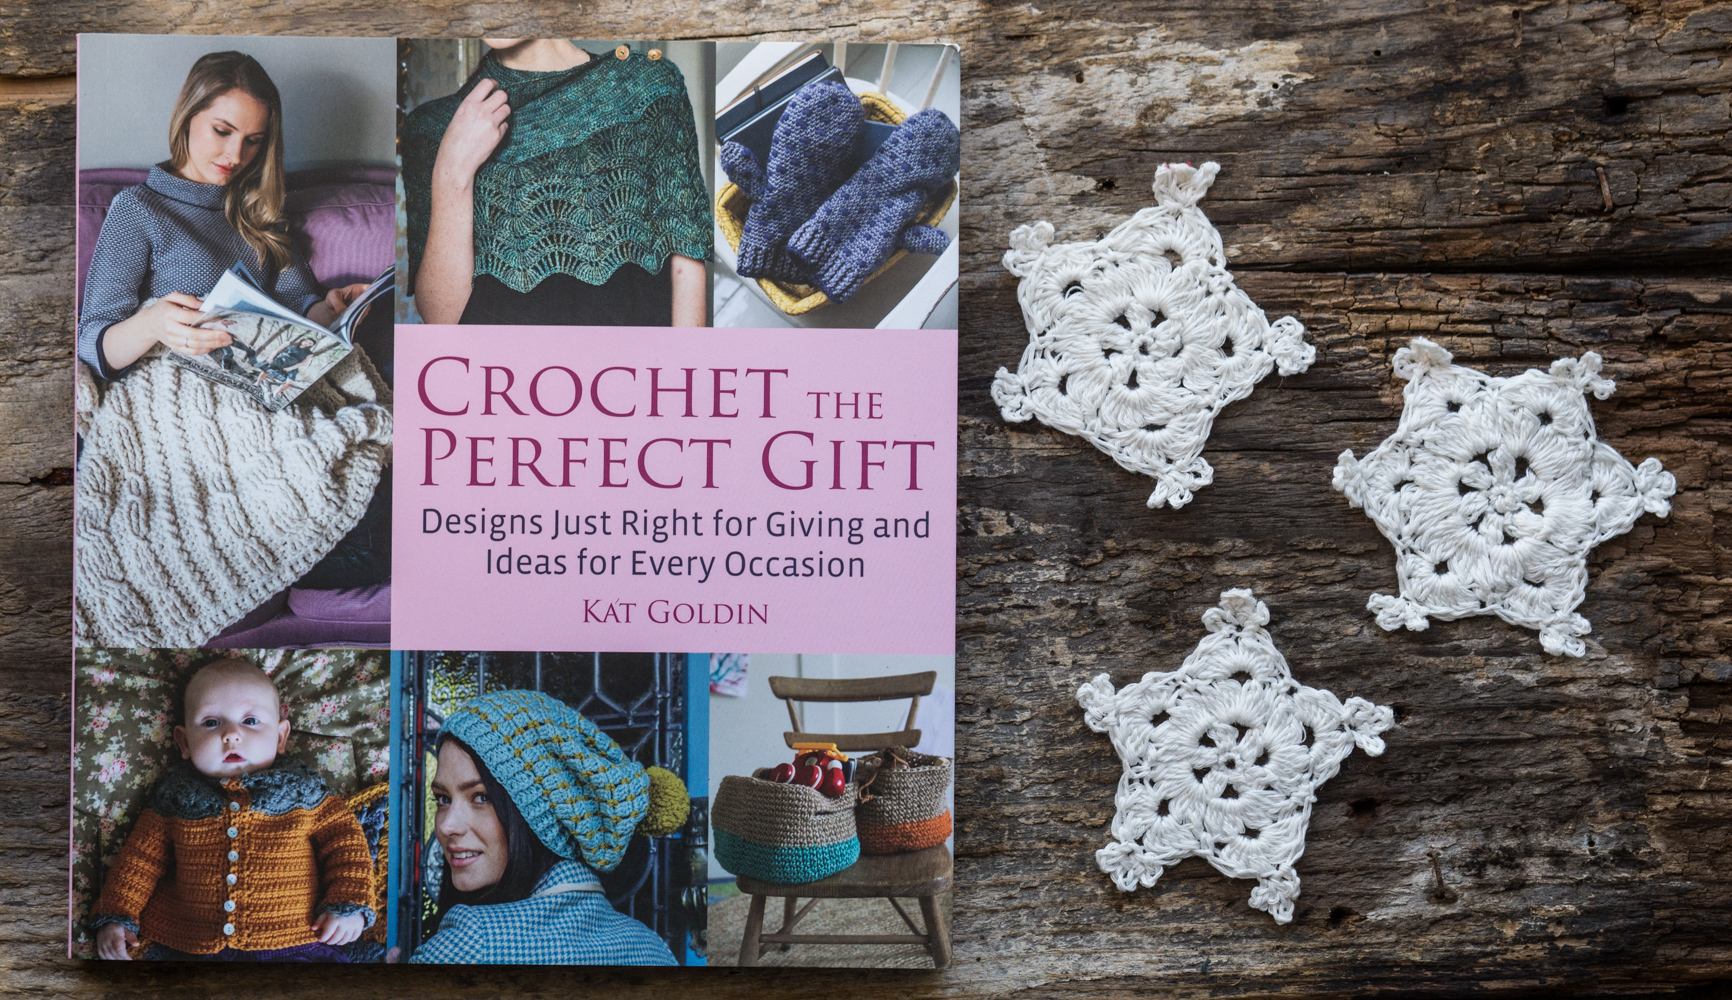 Crochet the Perfect Gift book by Kat Goldin